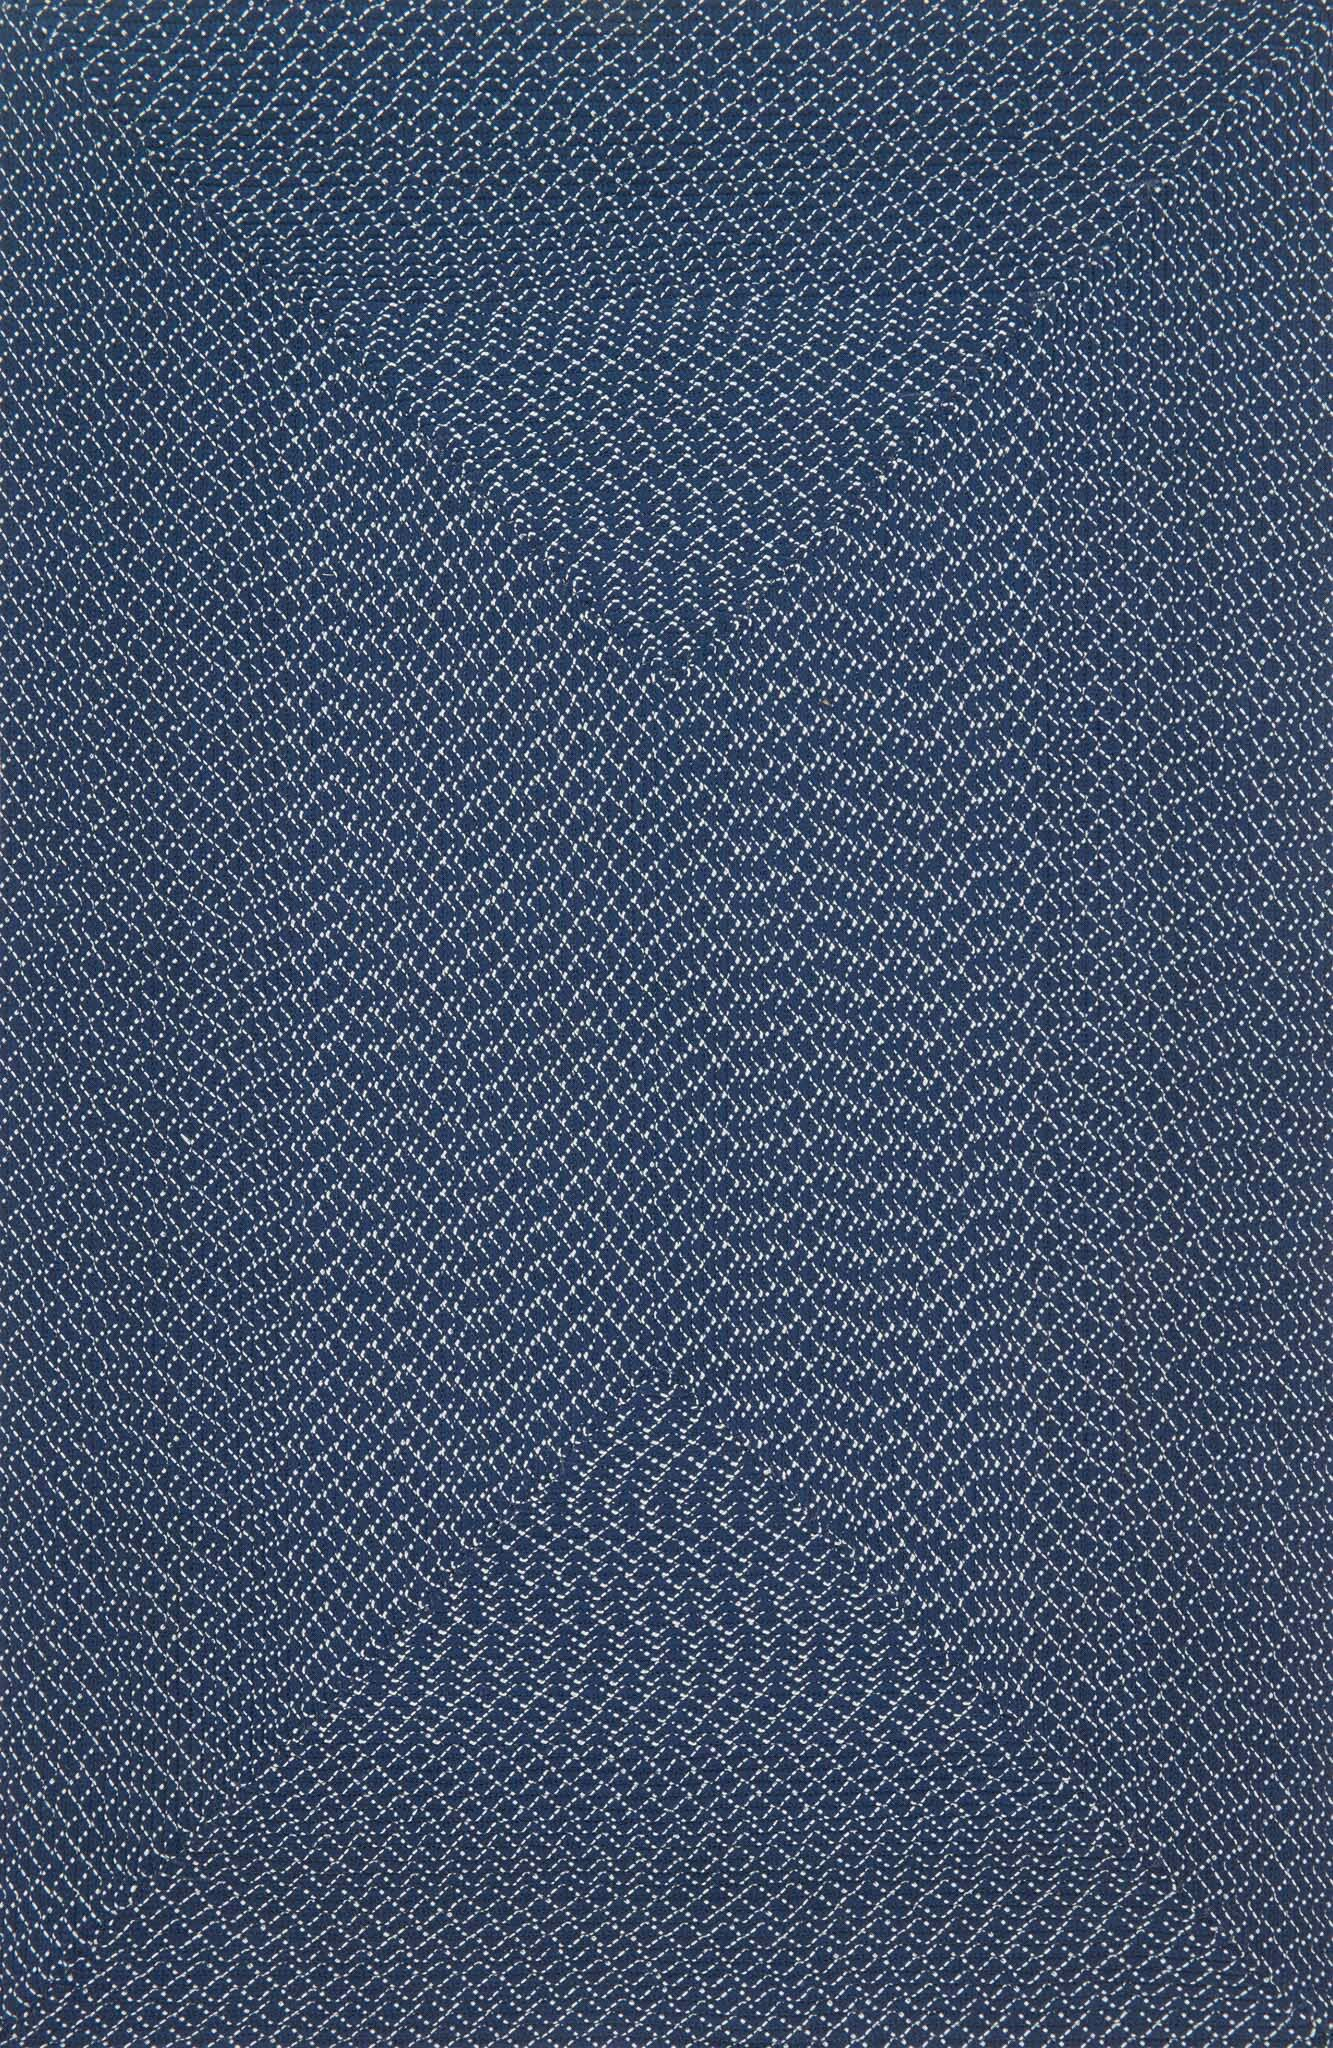 Daniell Hand-Woven Navy Indoor/Outdoor Area Rug Rug Size: Rectangle 5' x 7'